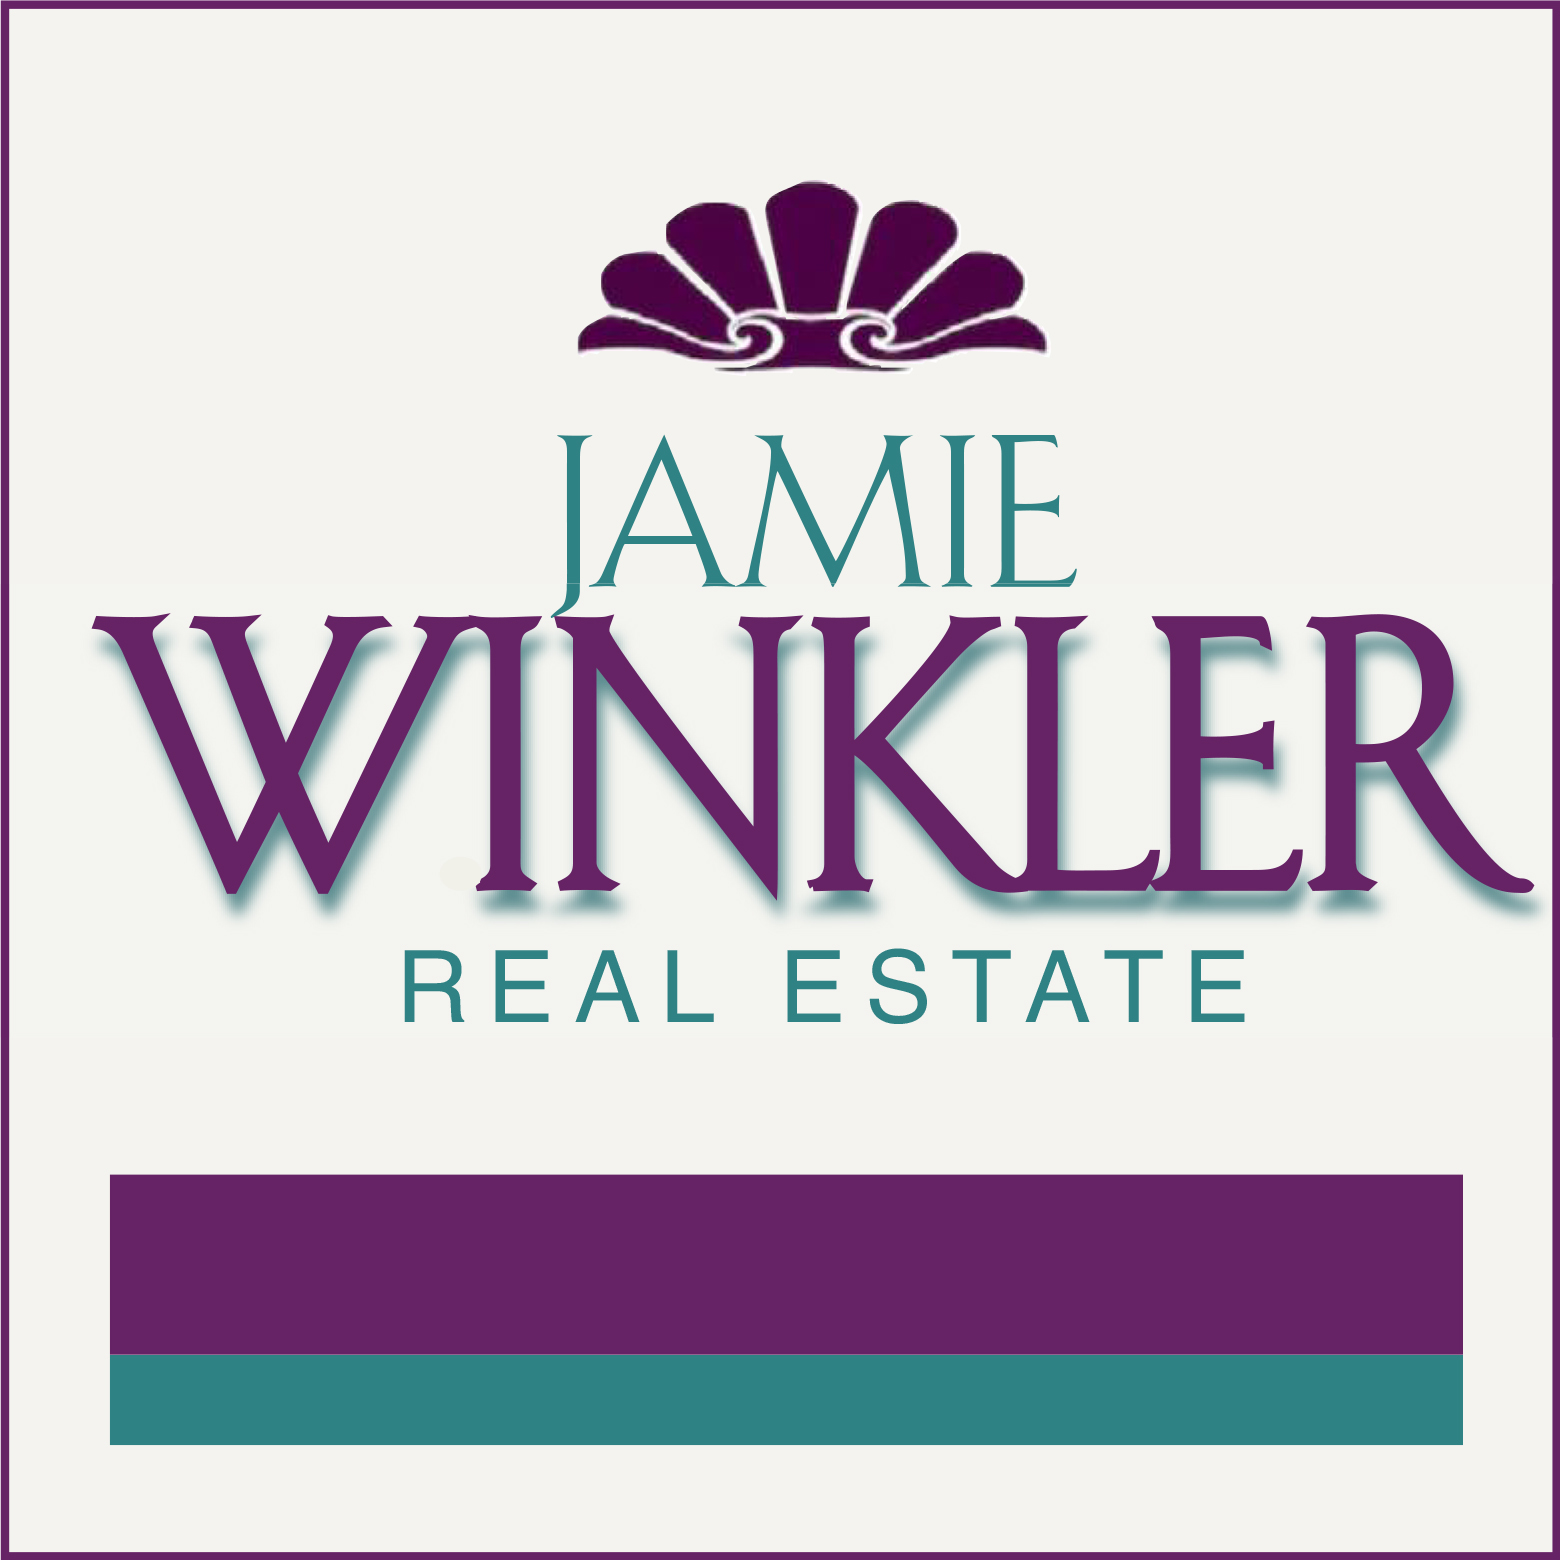 Fire Island Winkler Real Estate